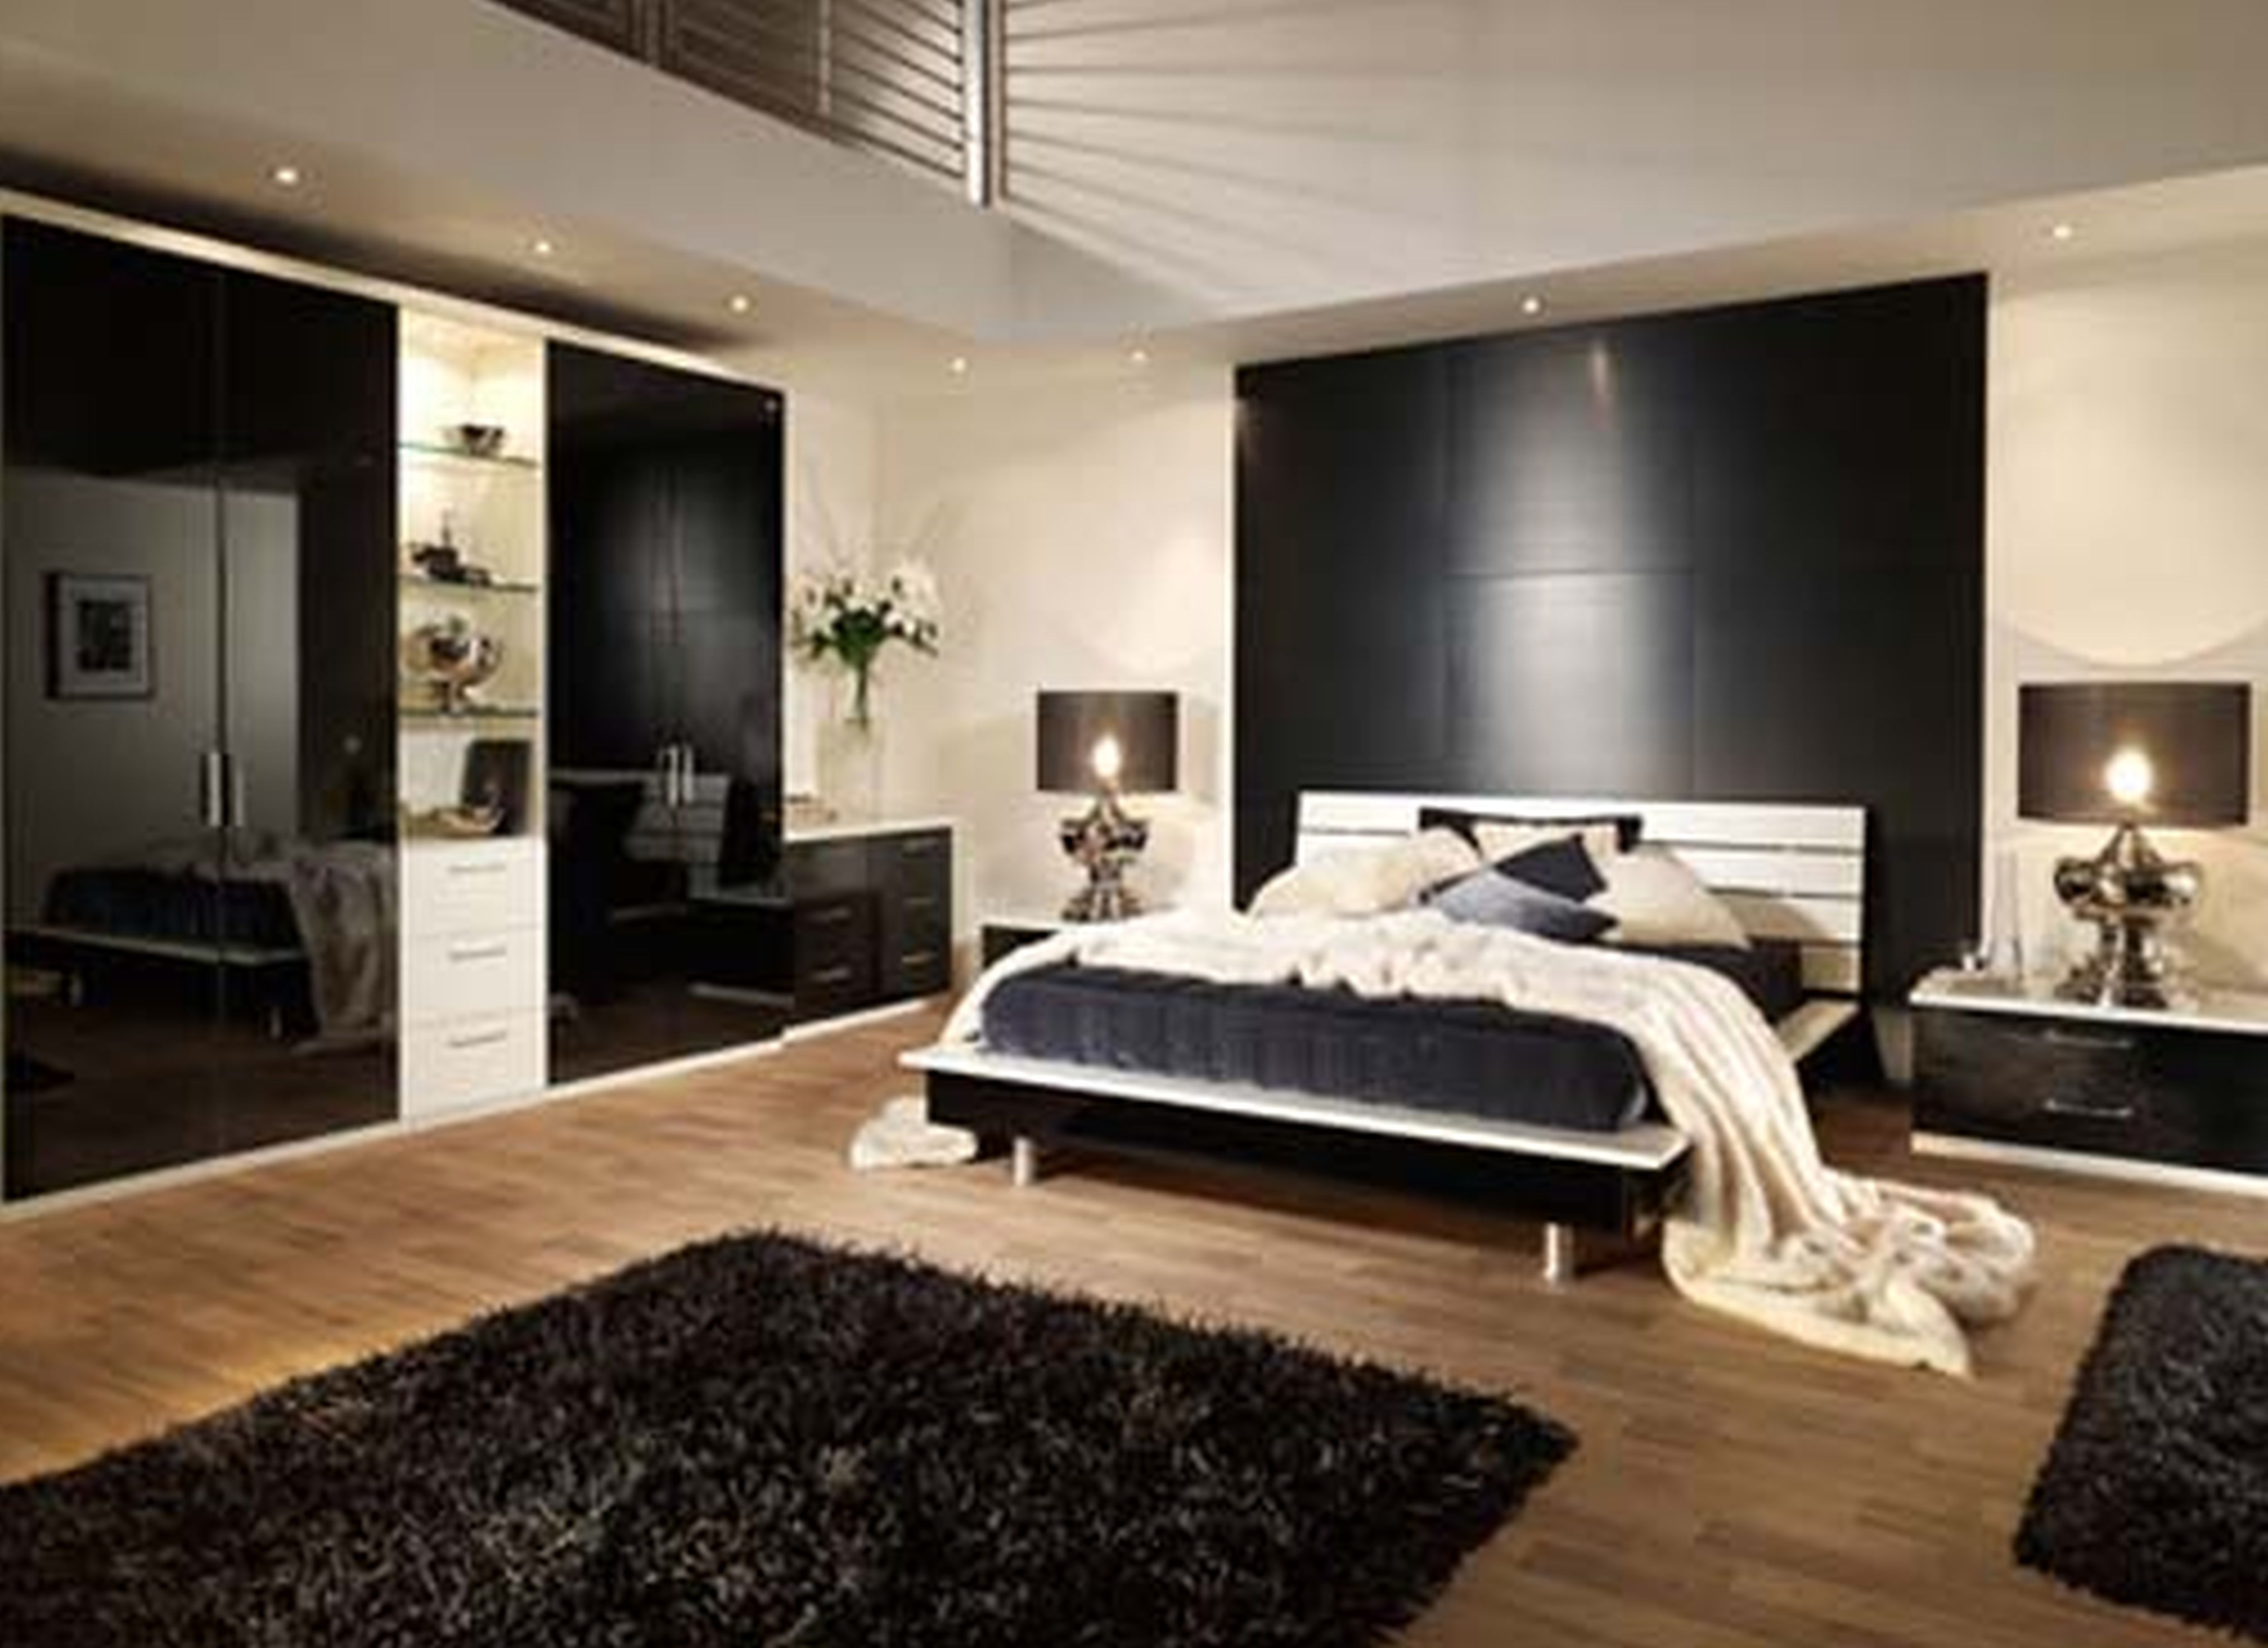 Inspiring Bedroom Design Ideas For Men Decorate A Intended The Most Brilliant Minimalist With Regard To Your Property